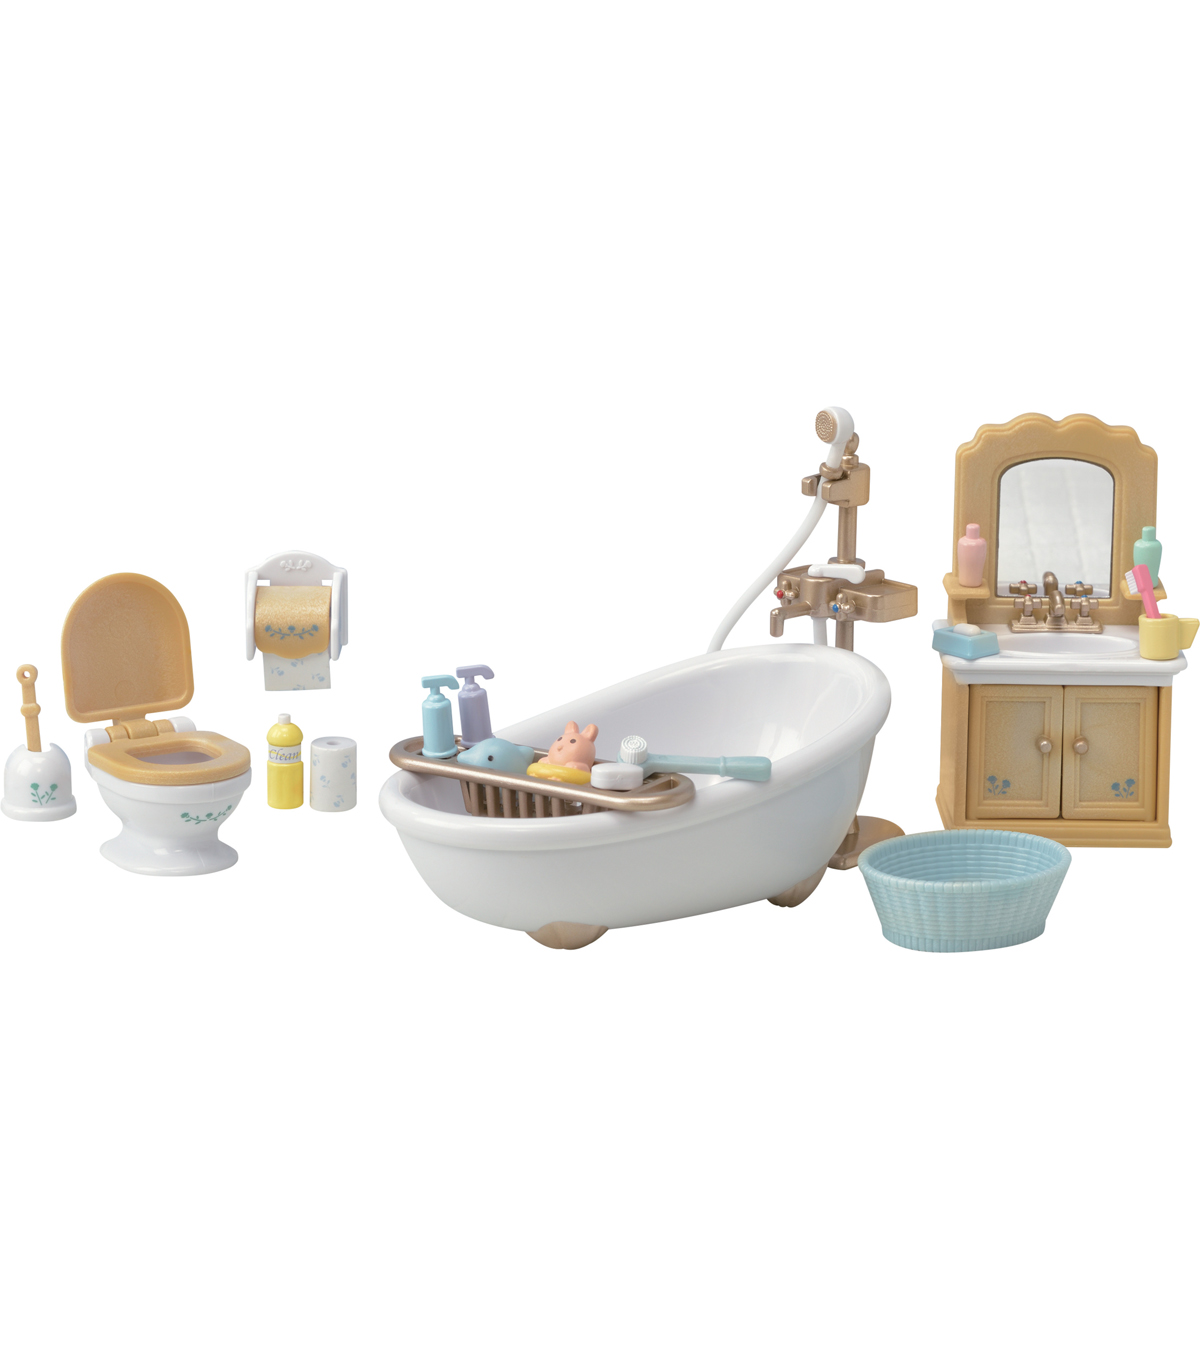 Calico Critters Country Bathrooom Set